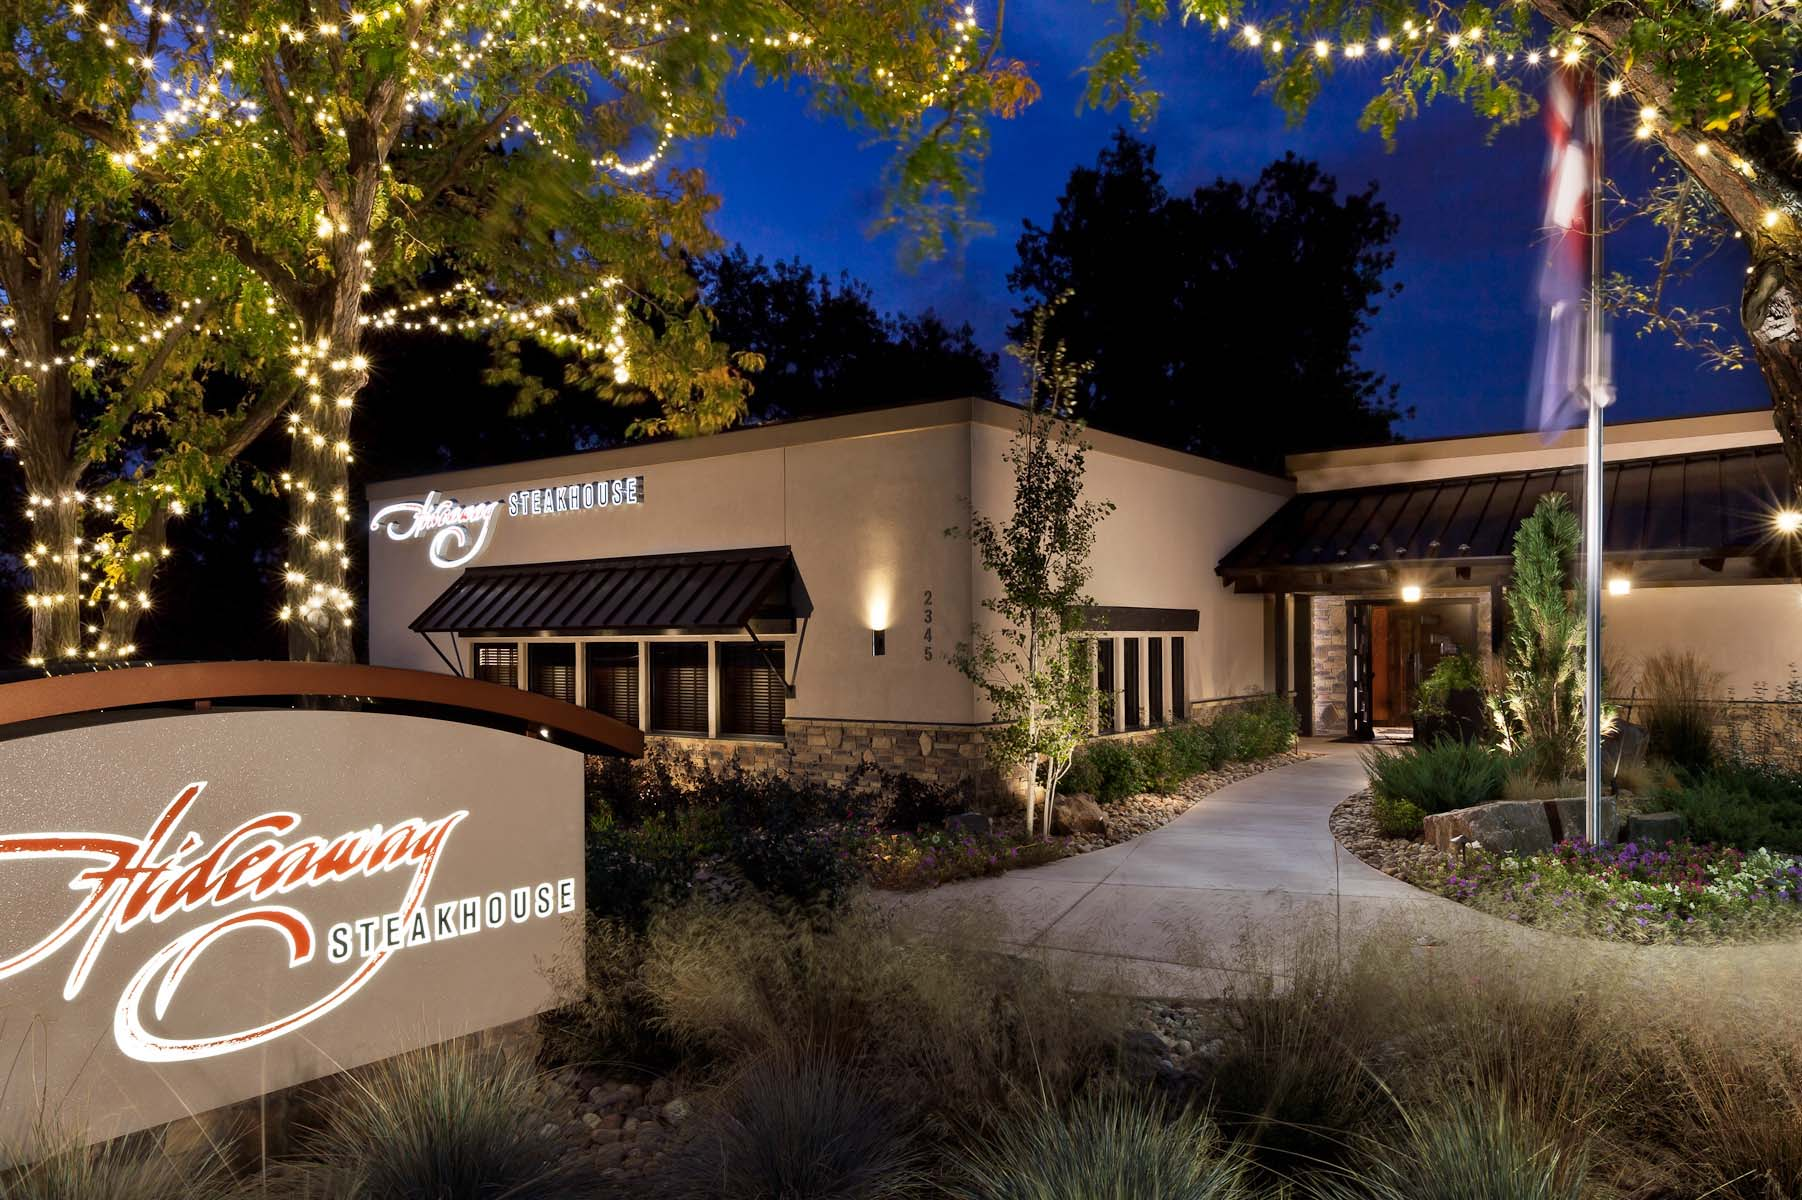 Exterior architectural photo of Hideaway Steakhouse in Westminster, CO